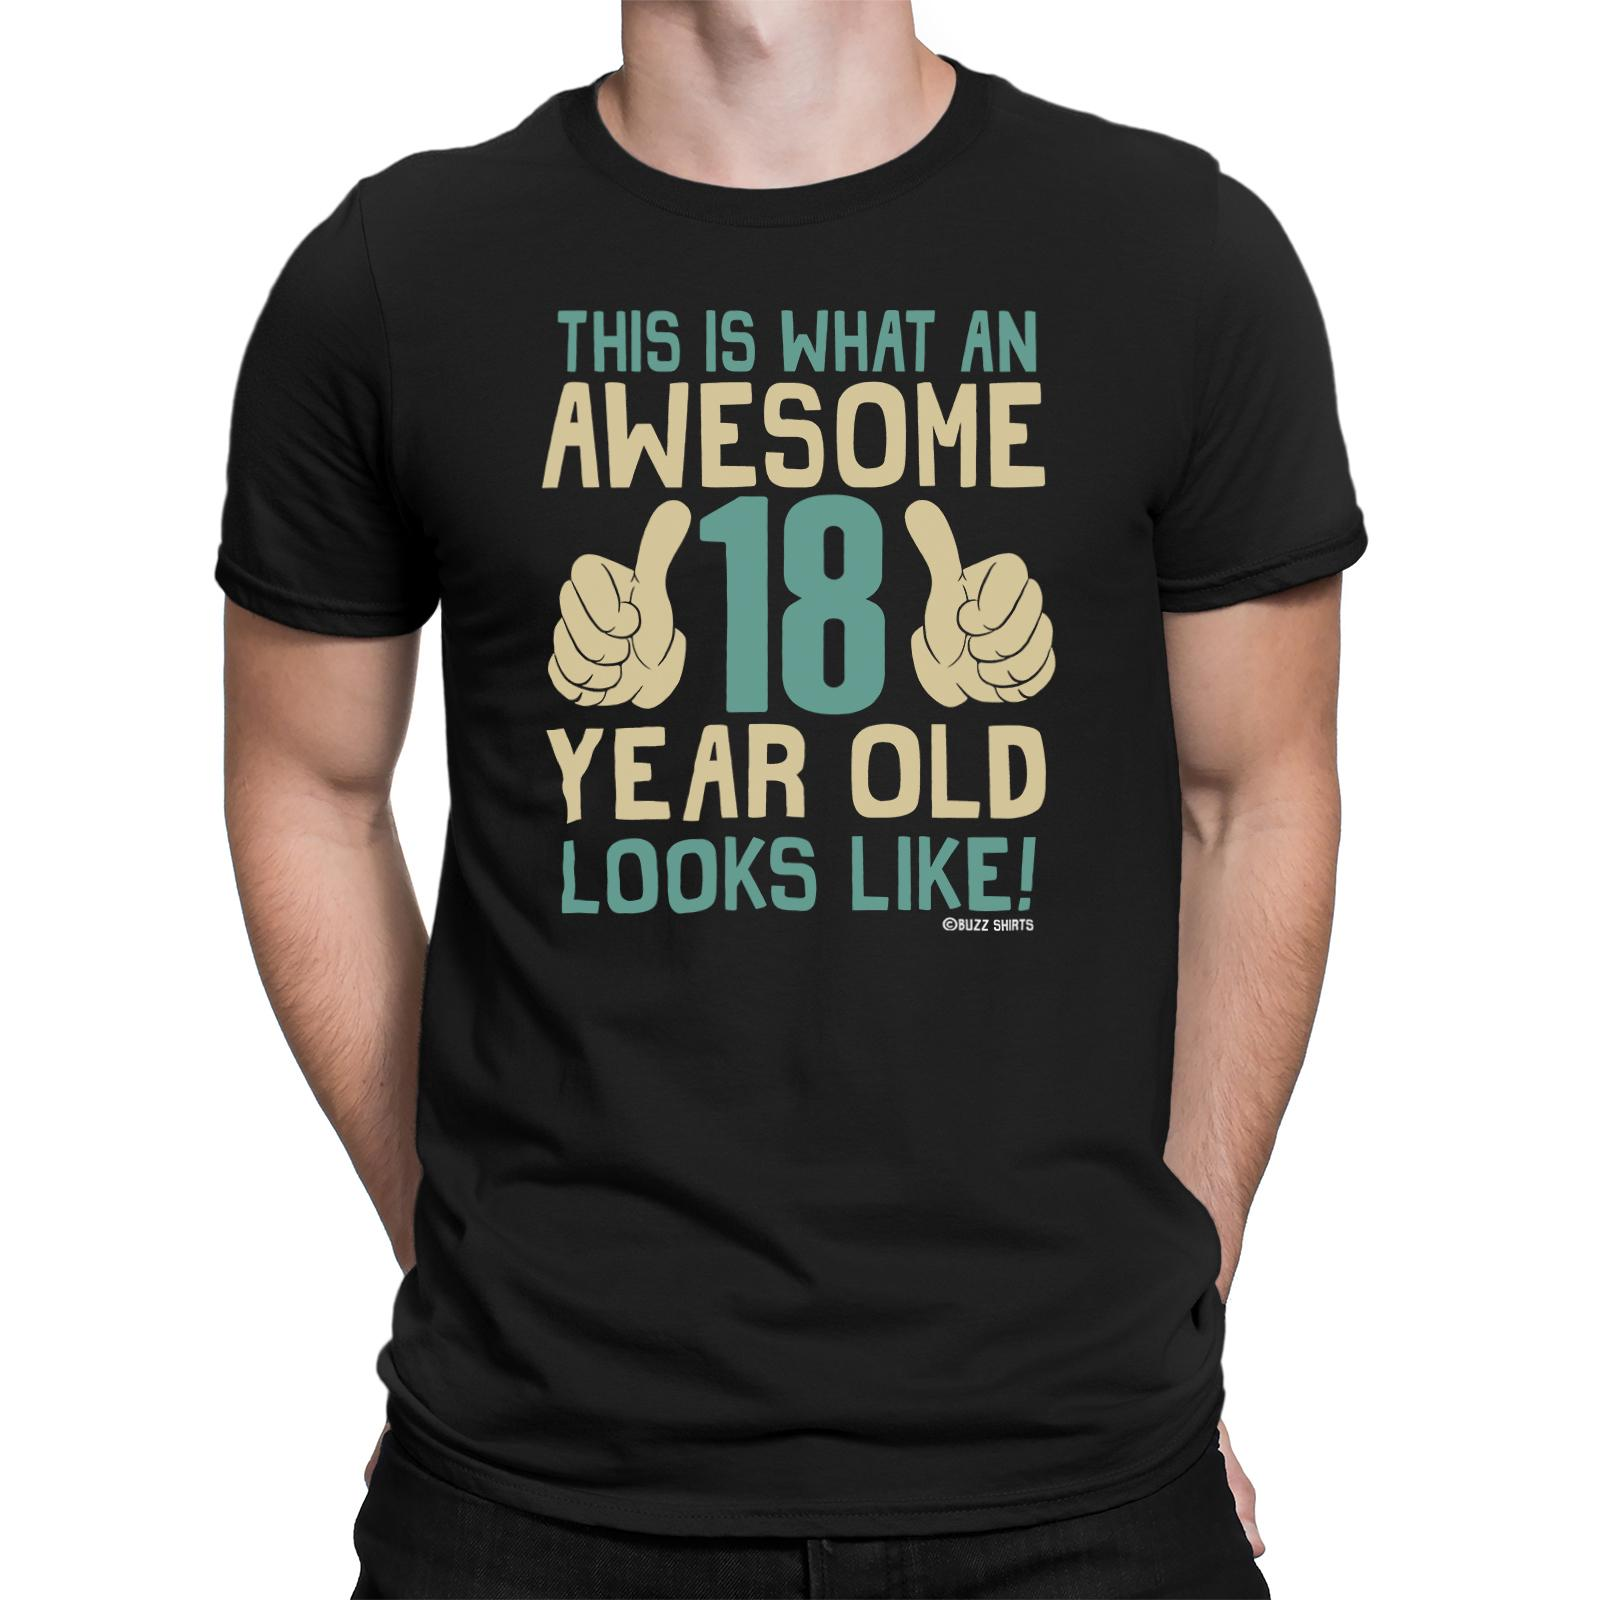 Mens 18th To 50th BIRTHDAY TShirts Awesome 18 50 Years Old Looks